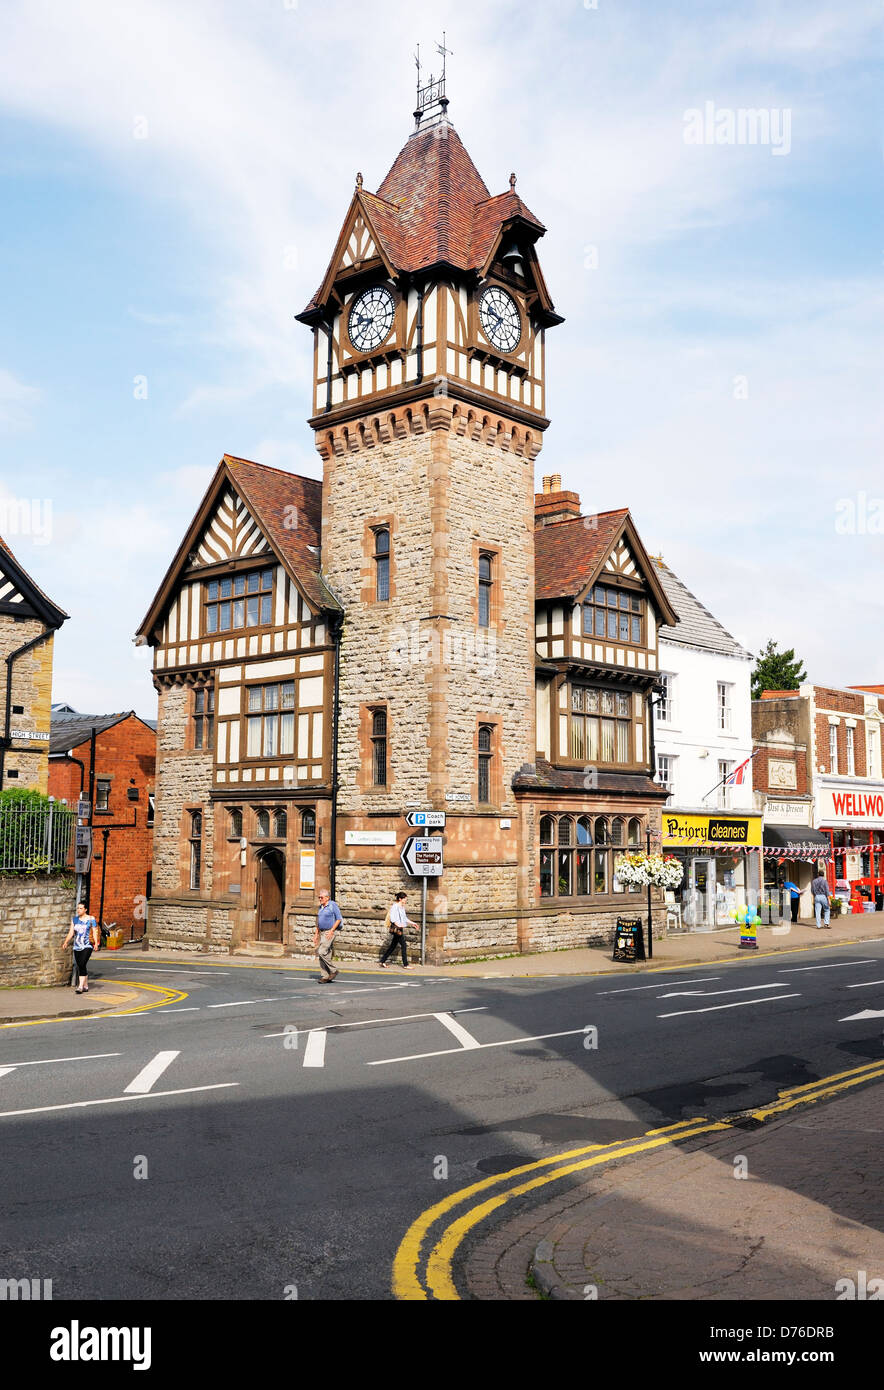 Clock Tower and library on the High Street in the town of Ledbury, Herefordshire, England - Stock Image